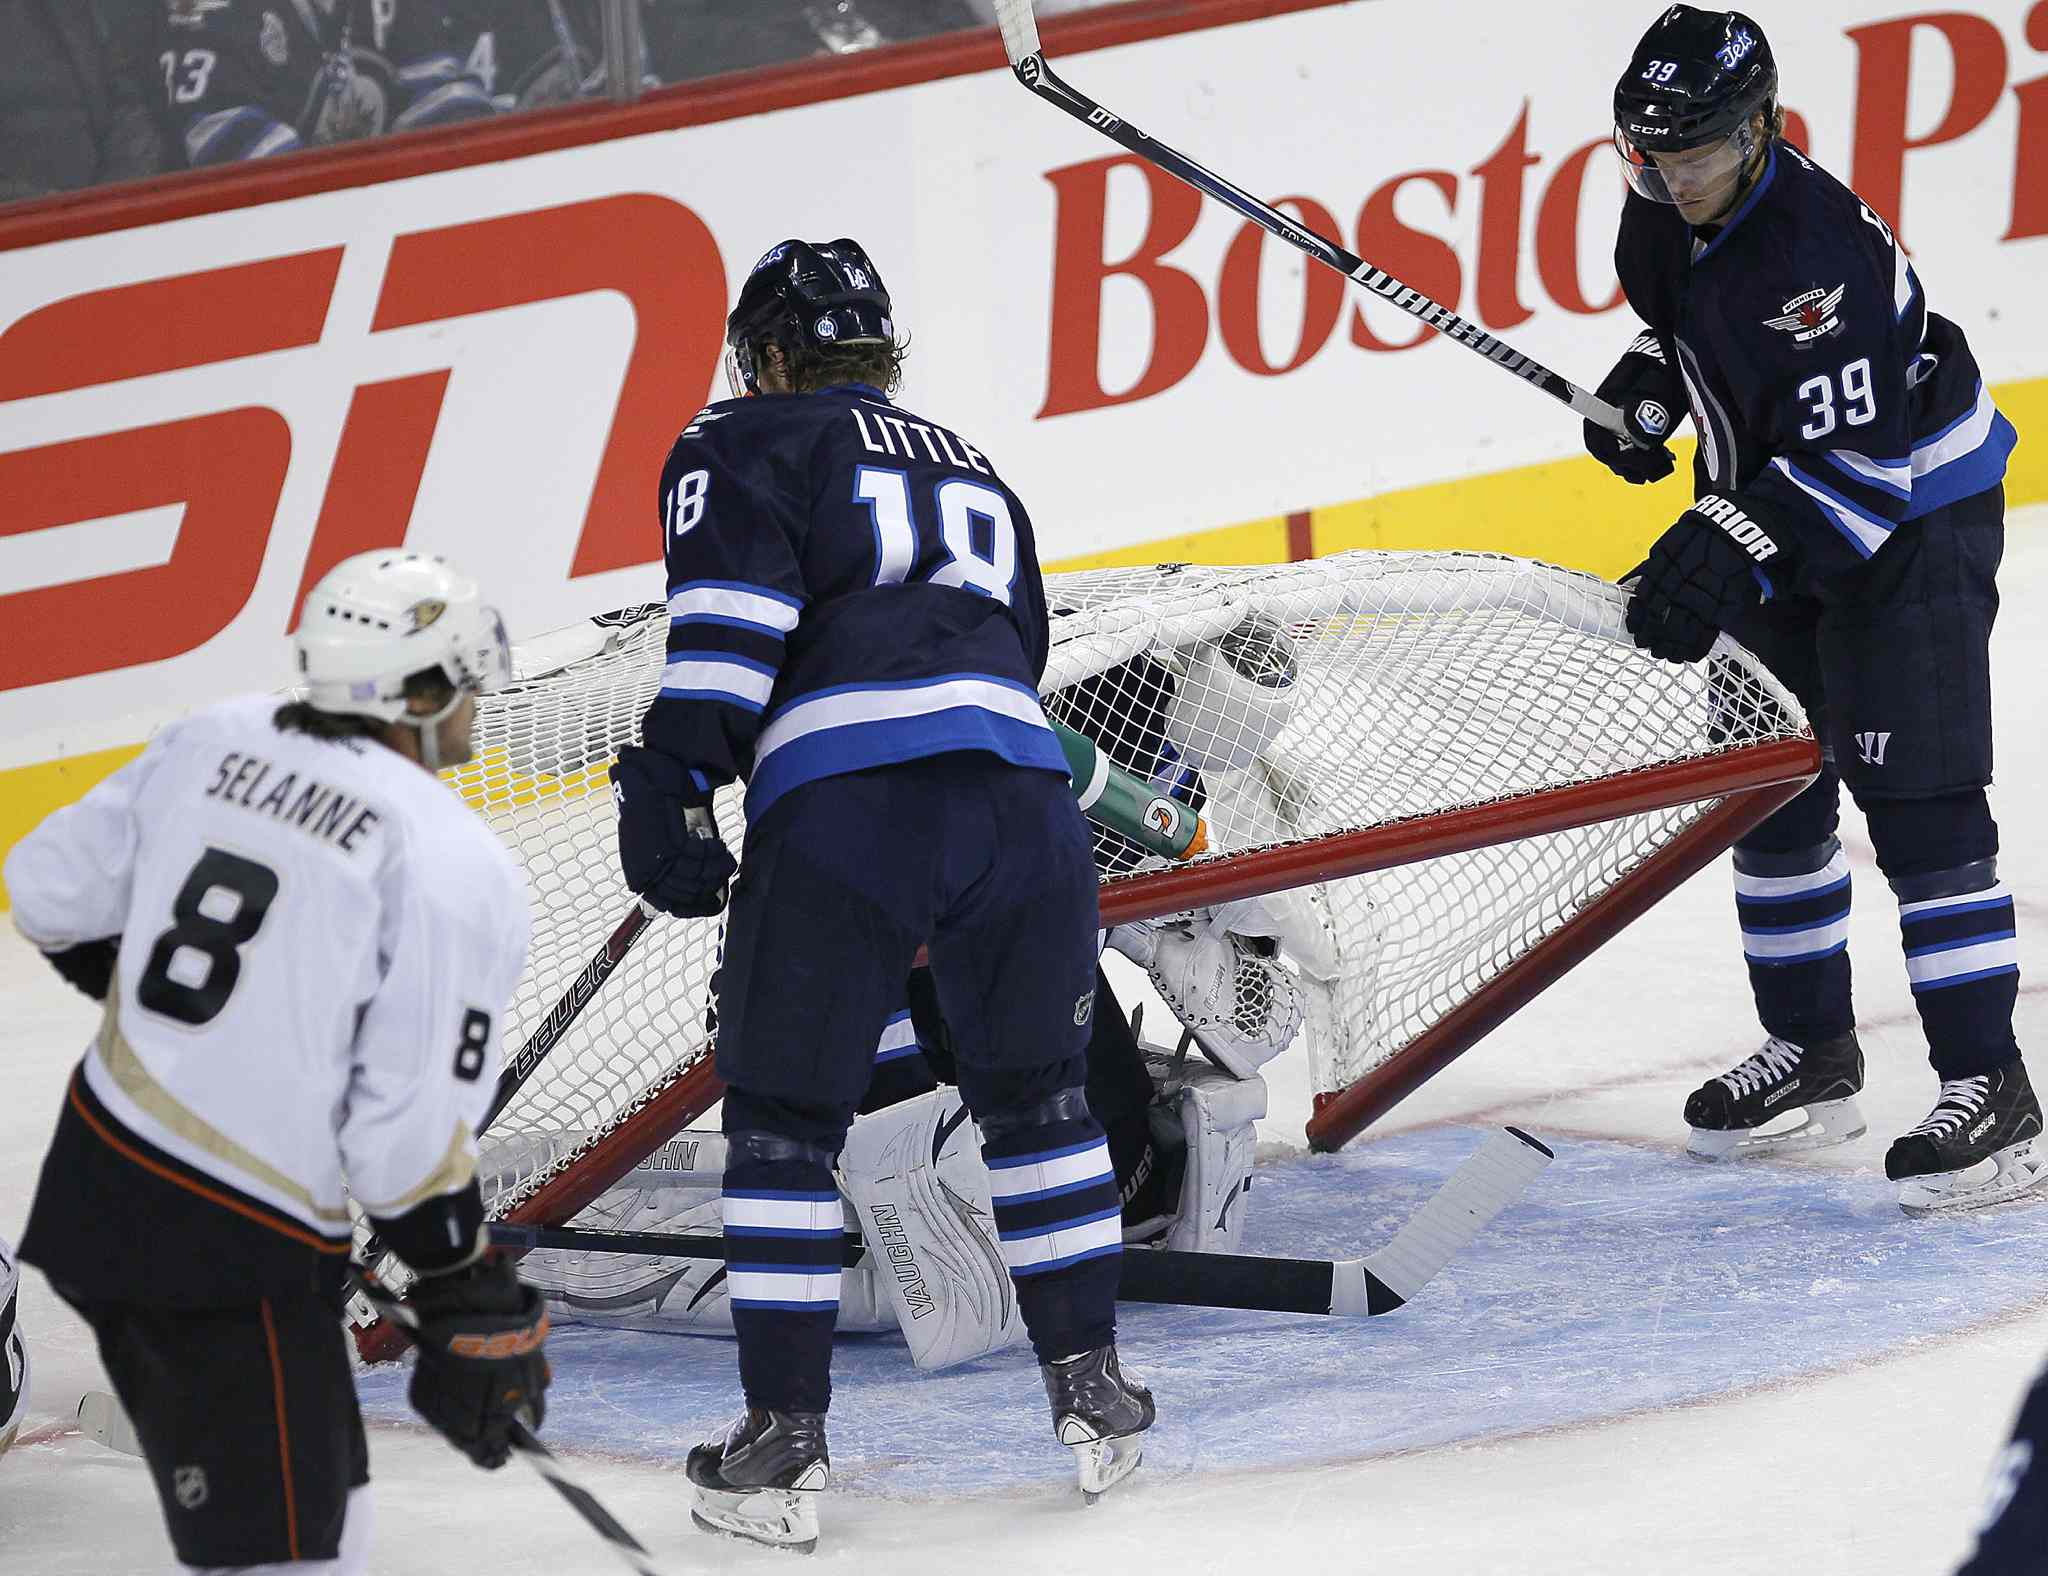 Winnipeg Jets' Bryan Little (18) and Toby Enstrom lift the net off goaltender Ondrej Pavelec in the first period as the Ducks' Teemu Selanne cruises past.